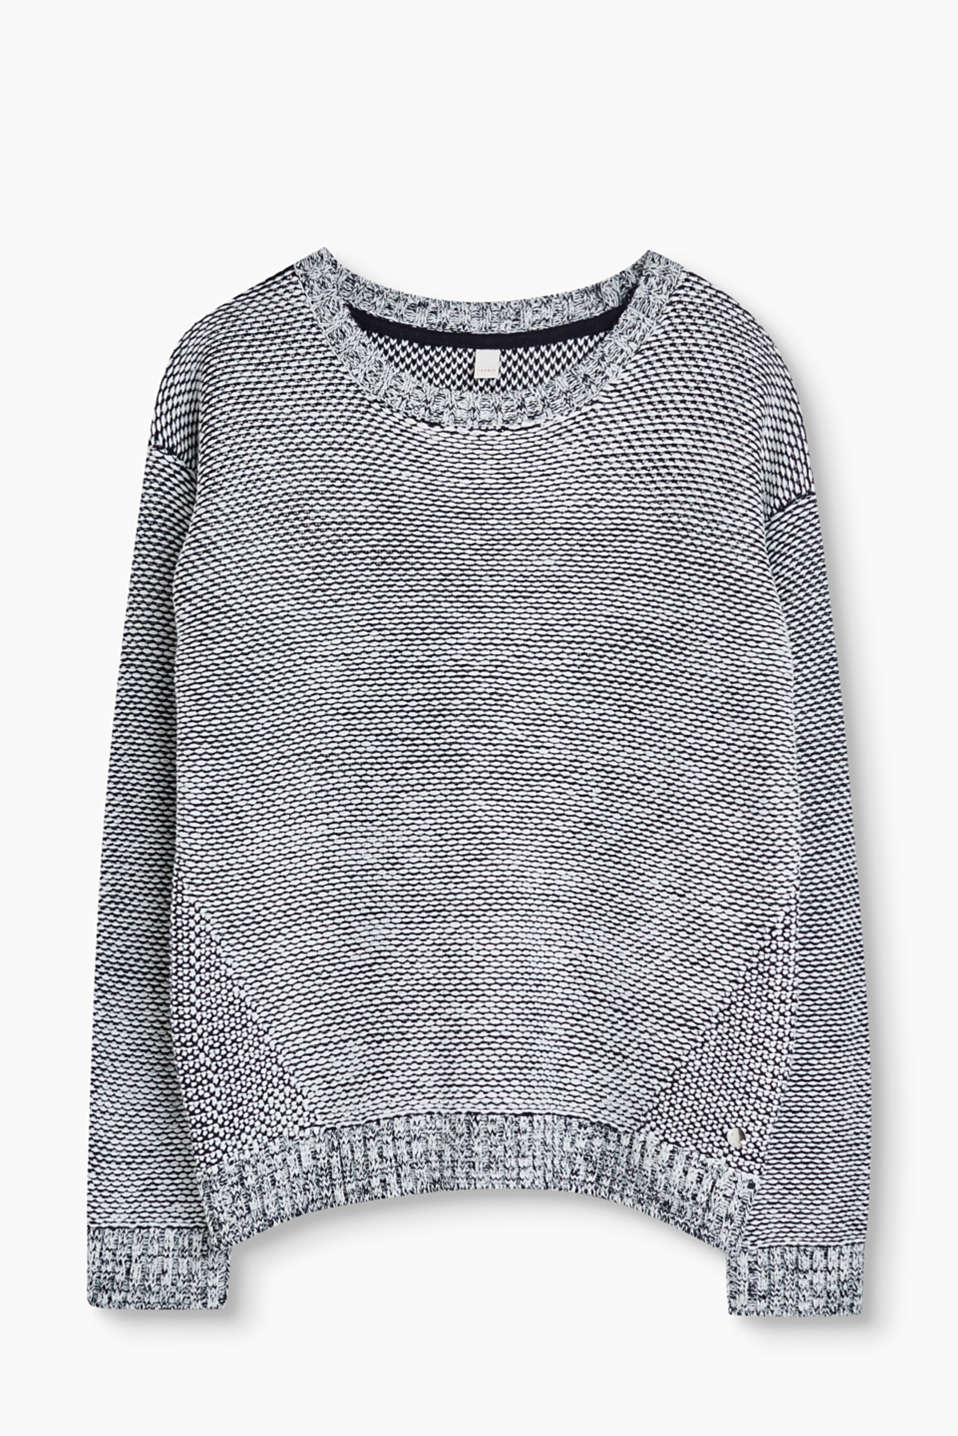 In a two-tone look: soft jumper with a honeycomb texture, cotton blend